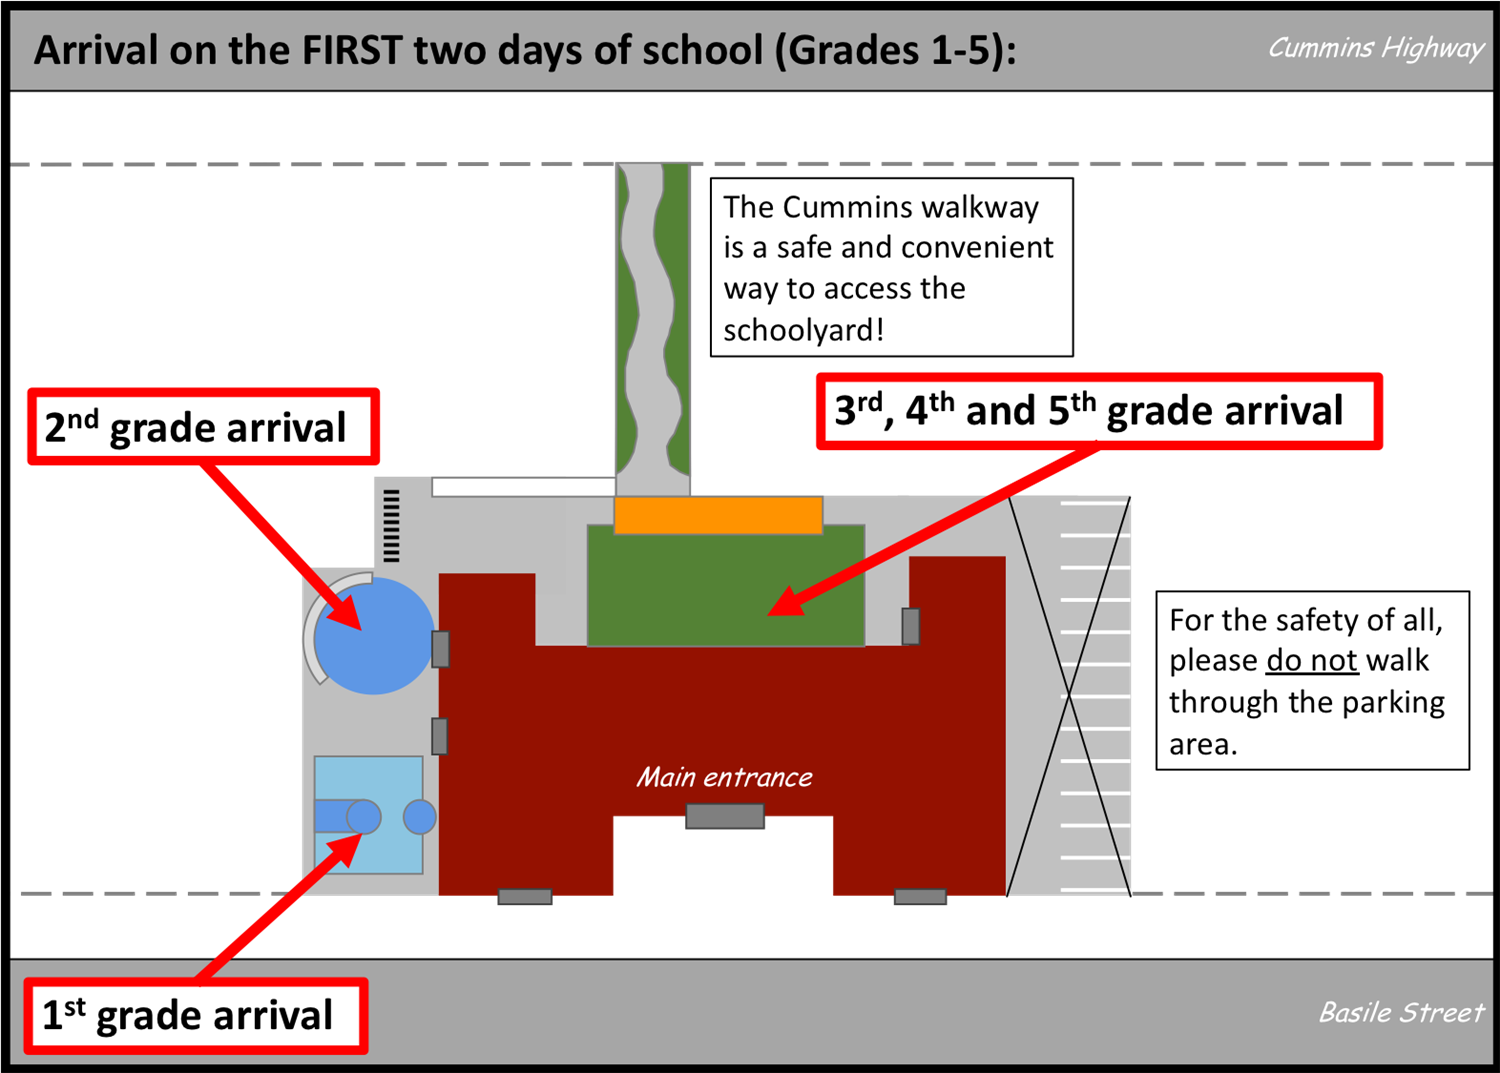 arrival procedures diagram for first 2 days of school, grades 1-5